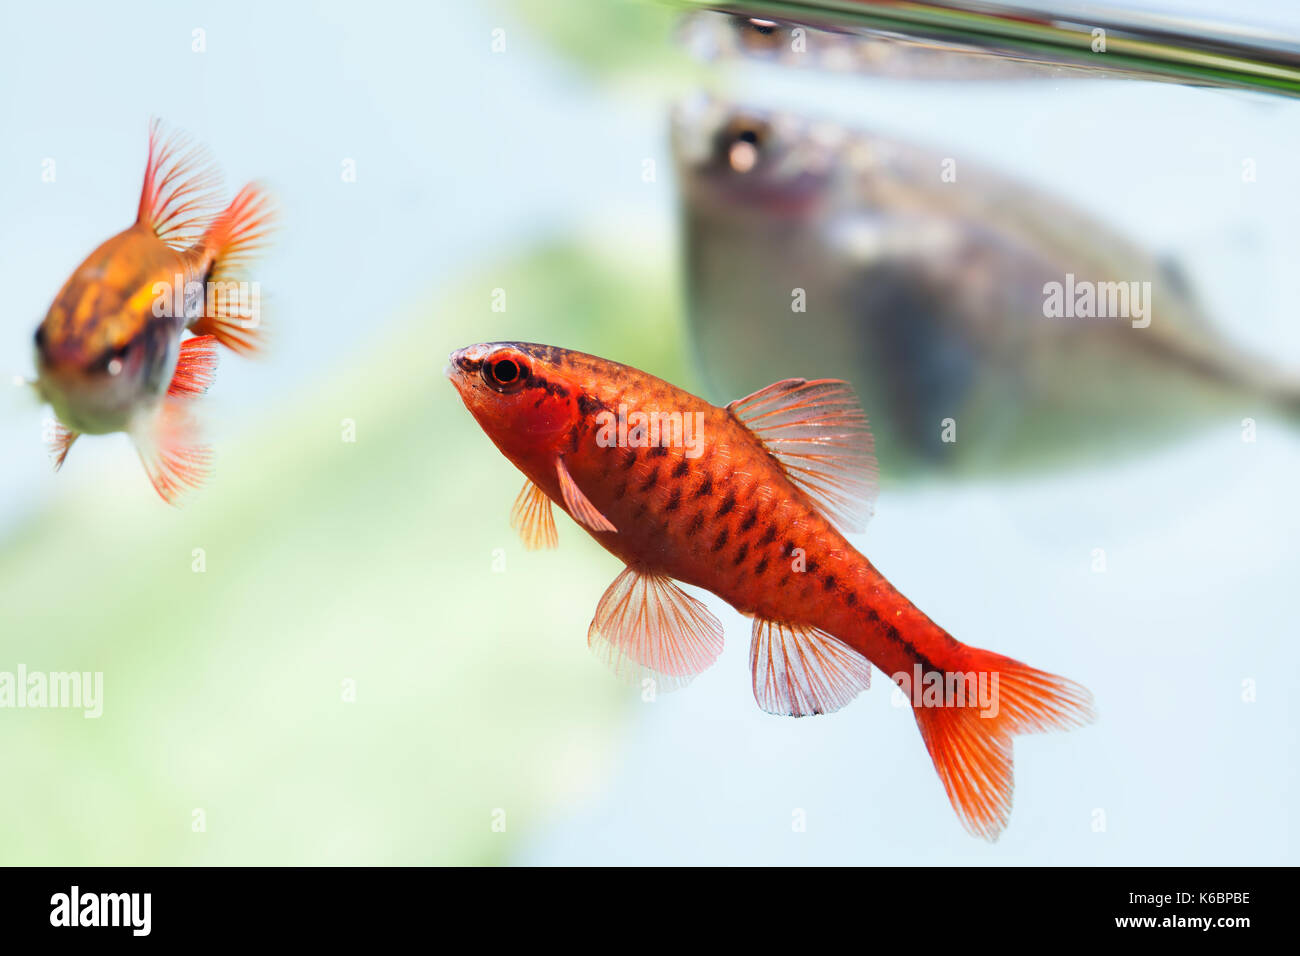 beautiful aquarium fishes red orange color. Cherry barb fishes macro ...